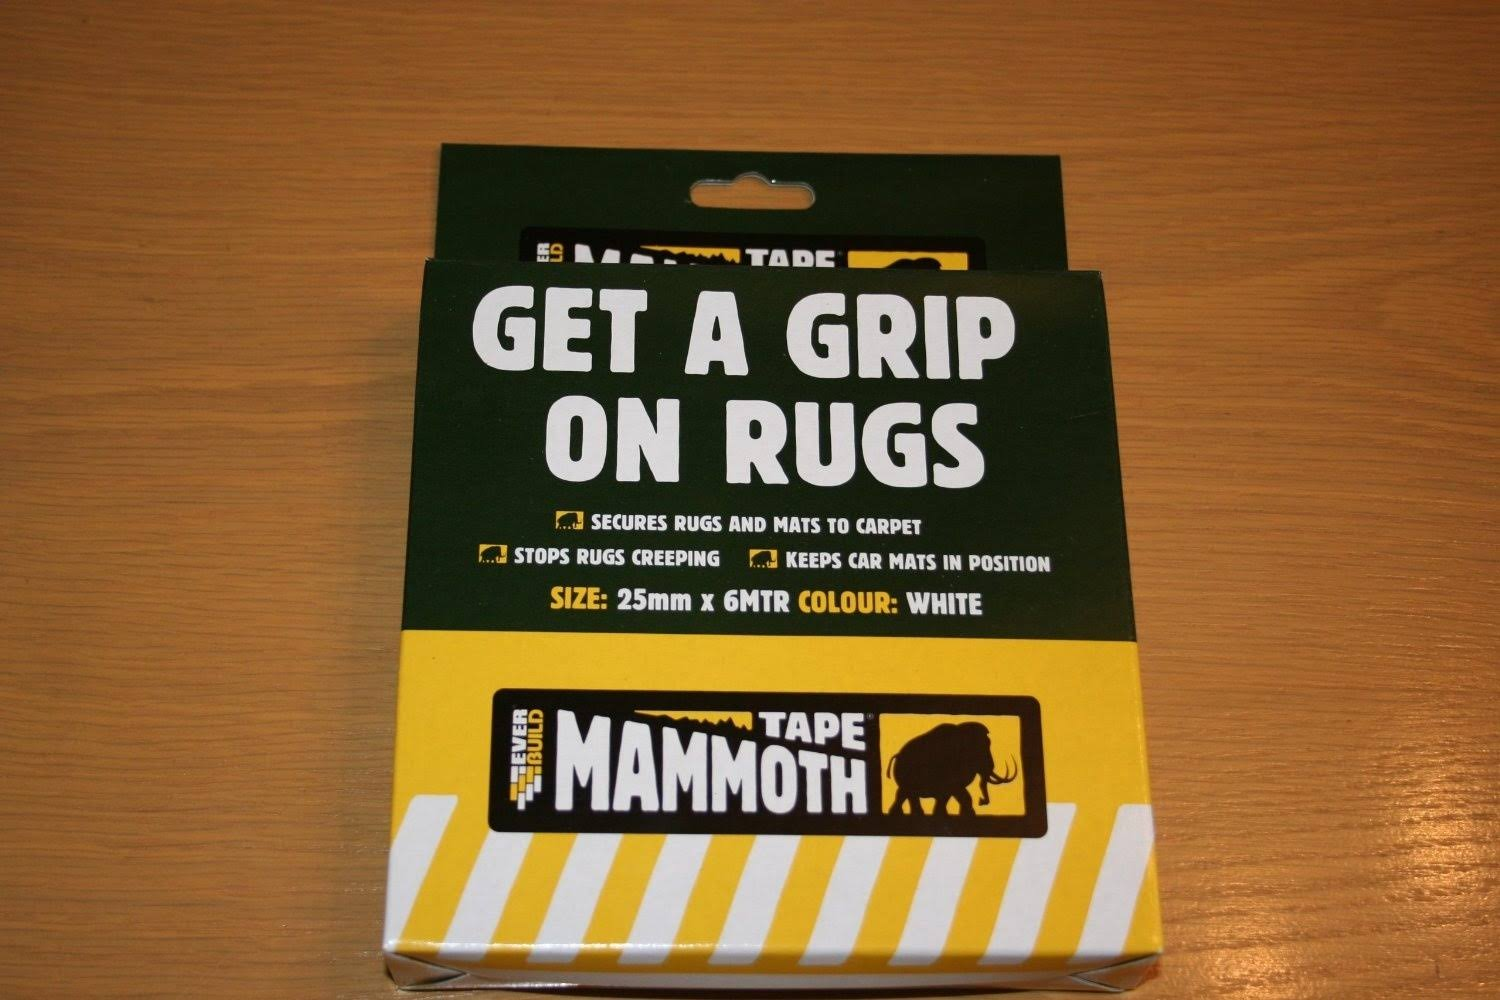 Everbuild Mammoth Tape Get A Grip On Rugs - 25mm x 6m